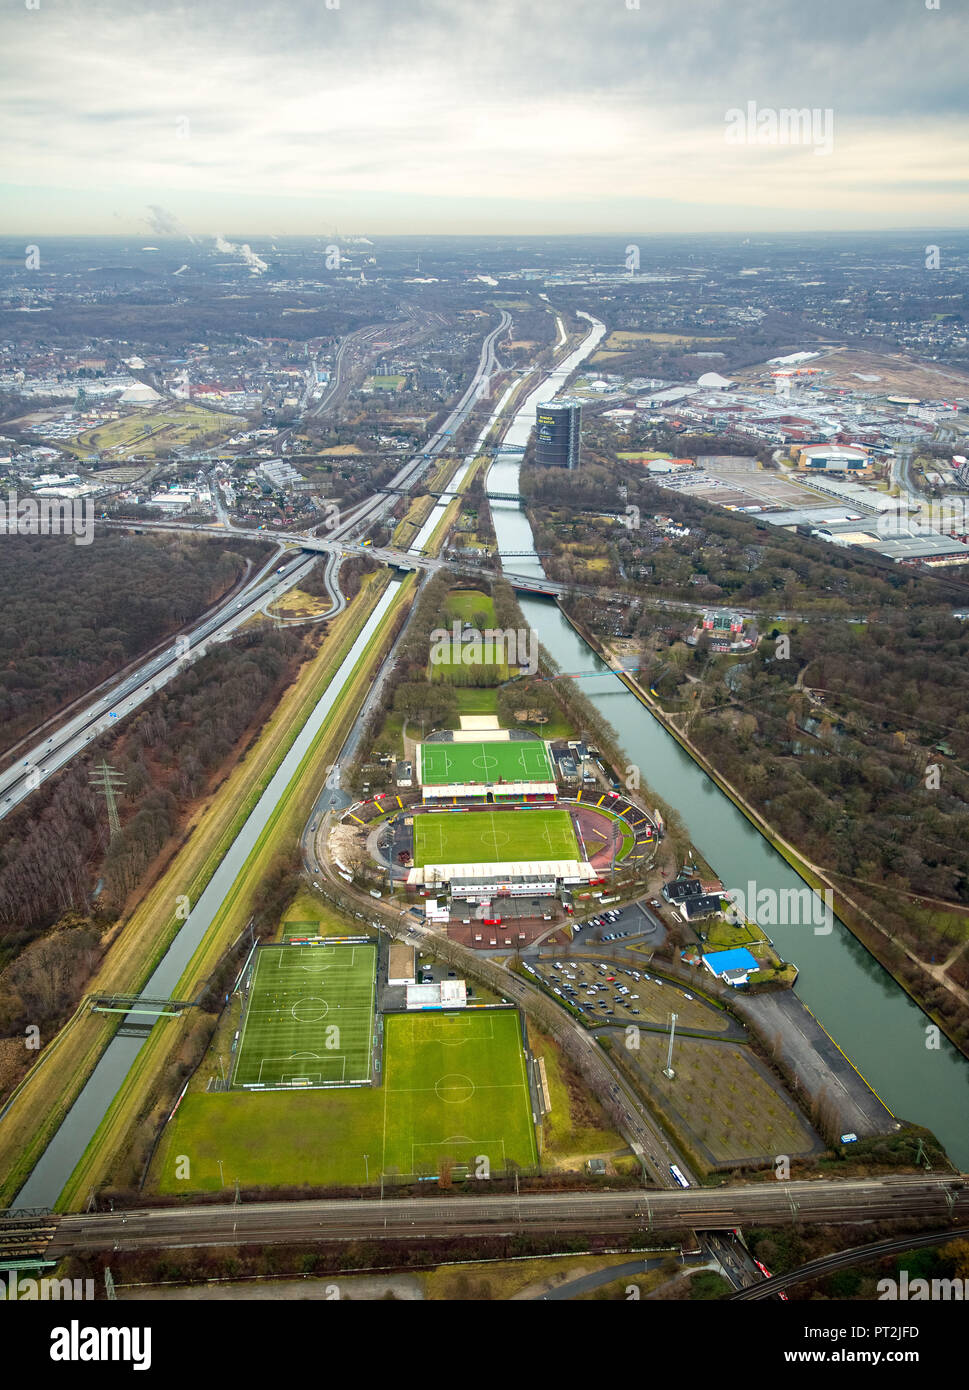 Stadium Niederrhein with new grandstand building and SSB site, between Emscher and Rhein-Herne Canal, Oberhausen, Ruhr Area, North Rhine-Westphalia, Germany - Stock Image